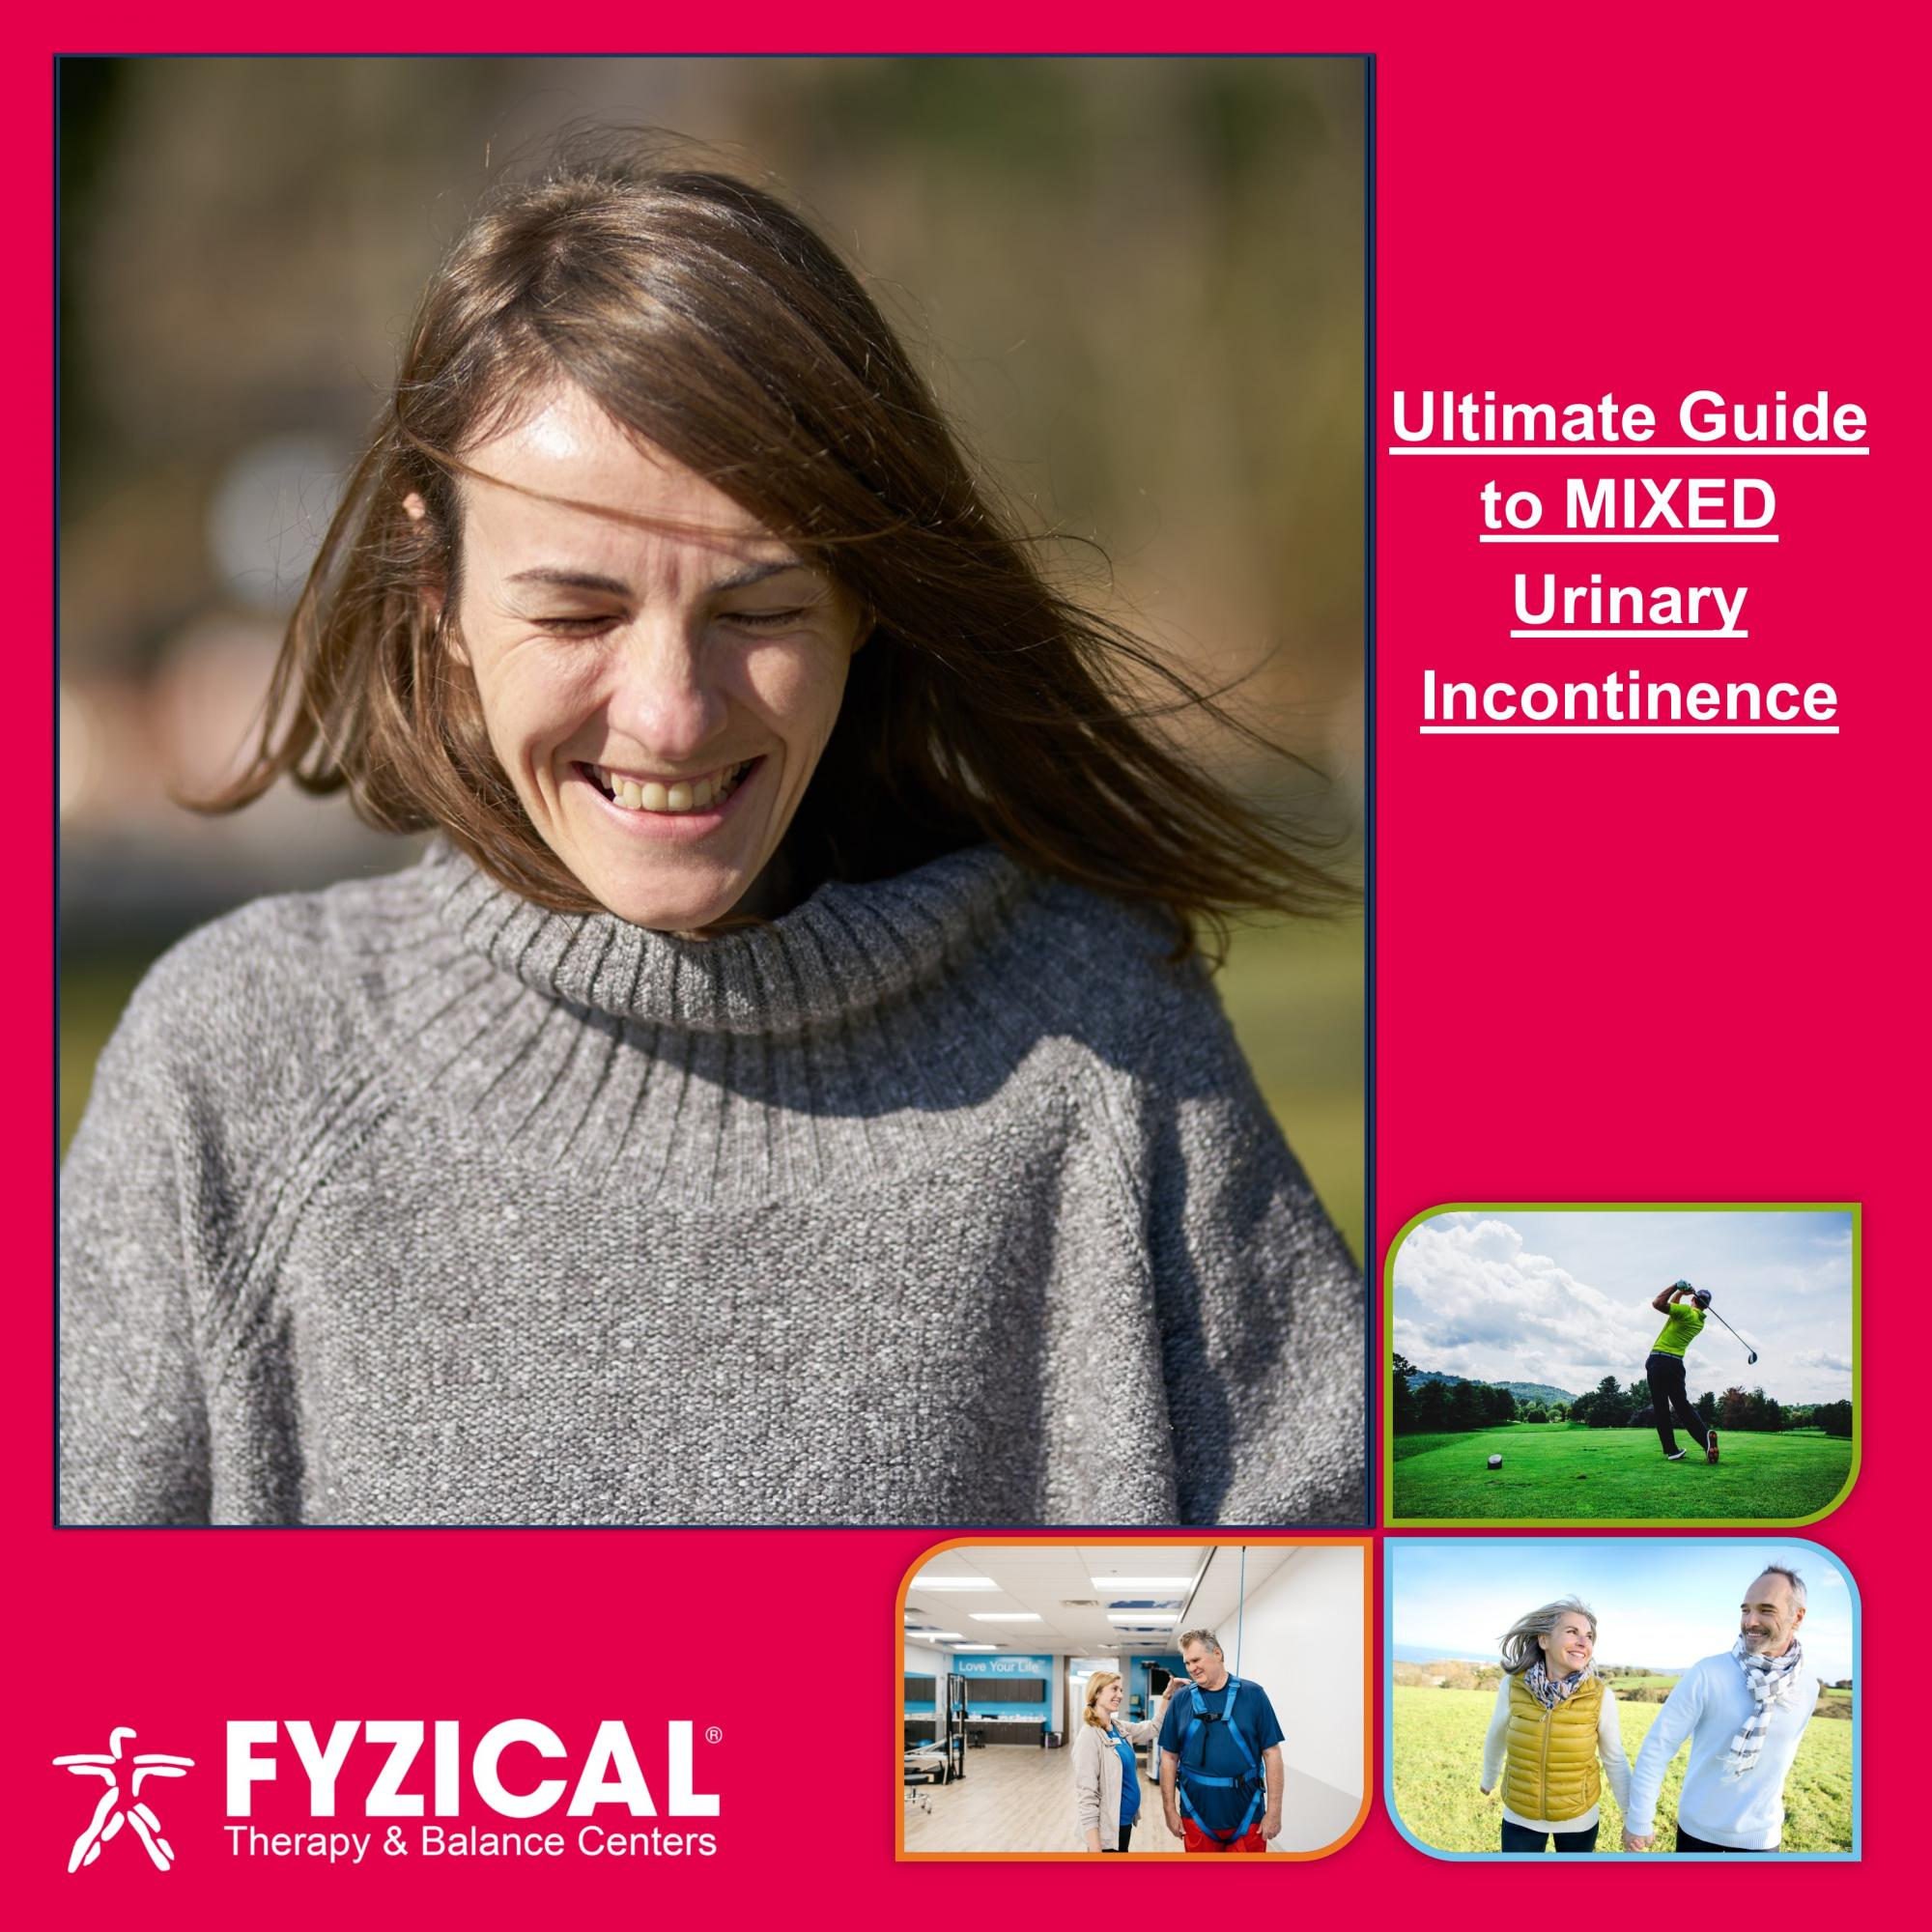 Ultimate Guide to Mixed Urinary Incontinence. What is Mixed Incontinence? What makes mixed incontinence worse? How do you treat mixed incontinence?